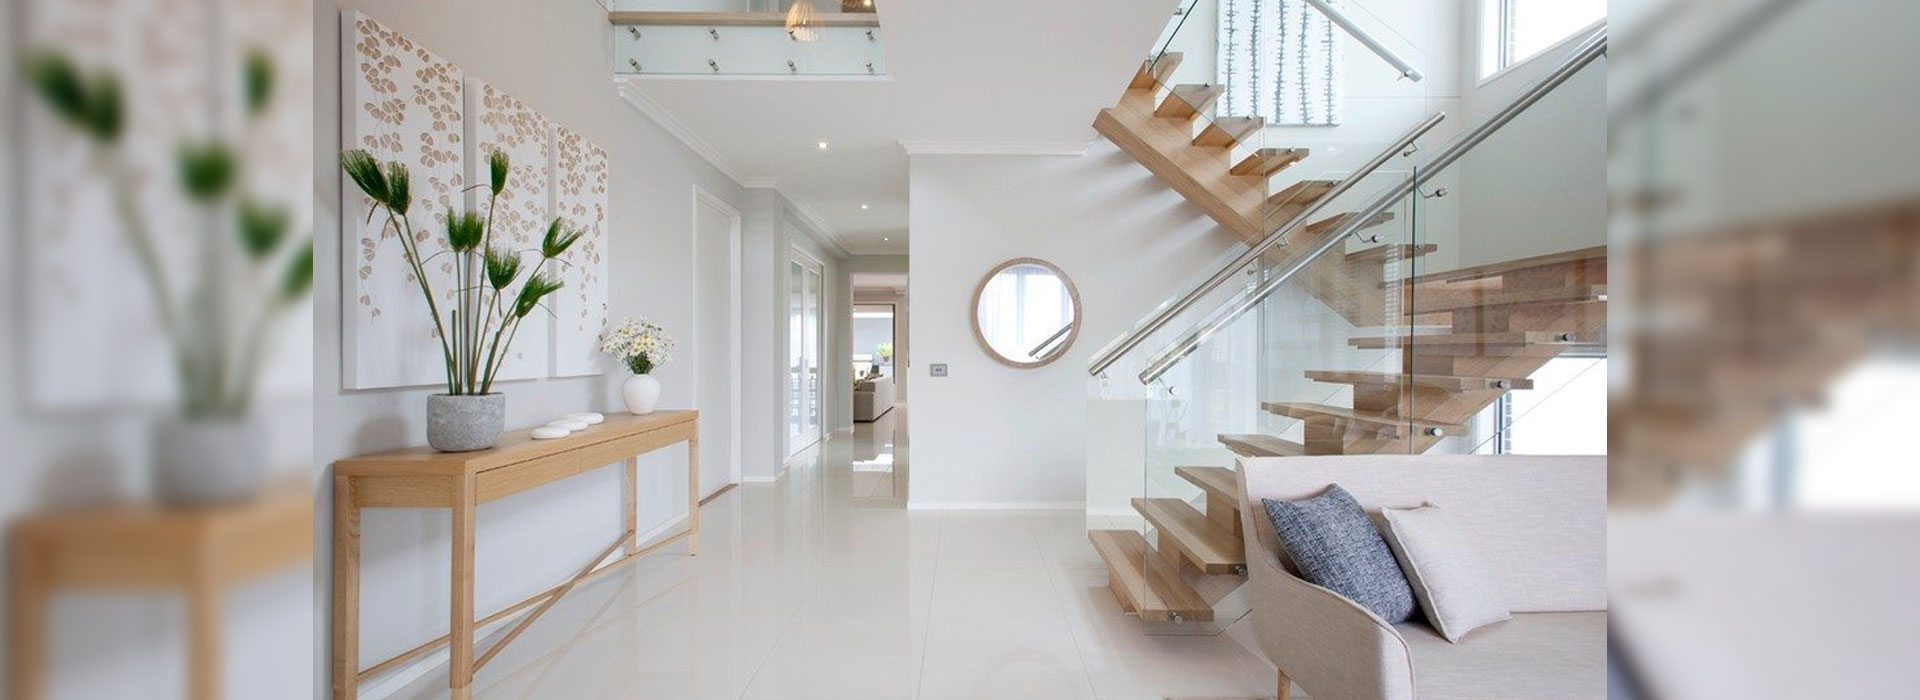 Glass Handrail Systems | Interior Handrail System | Residential Products & Services | Anchor-Ventana Glass Company